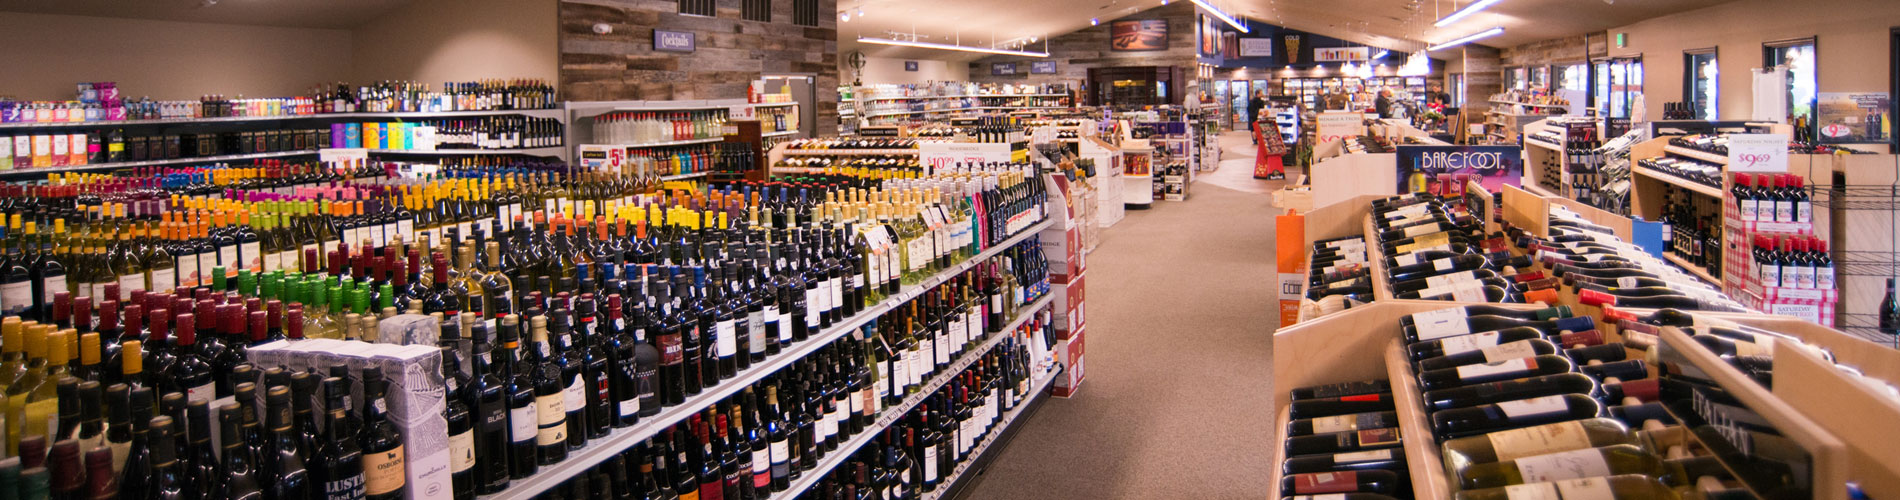 We're always featuring new wines or alcohol products, so be sure to stop back often.